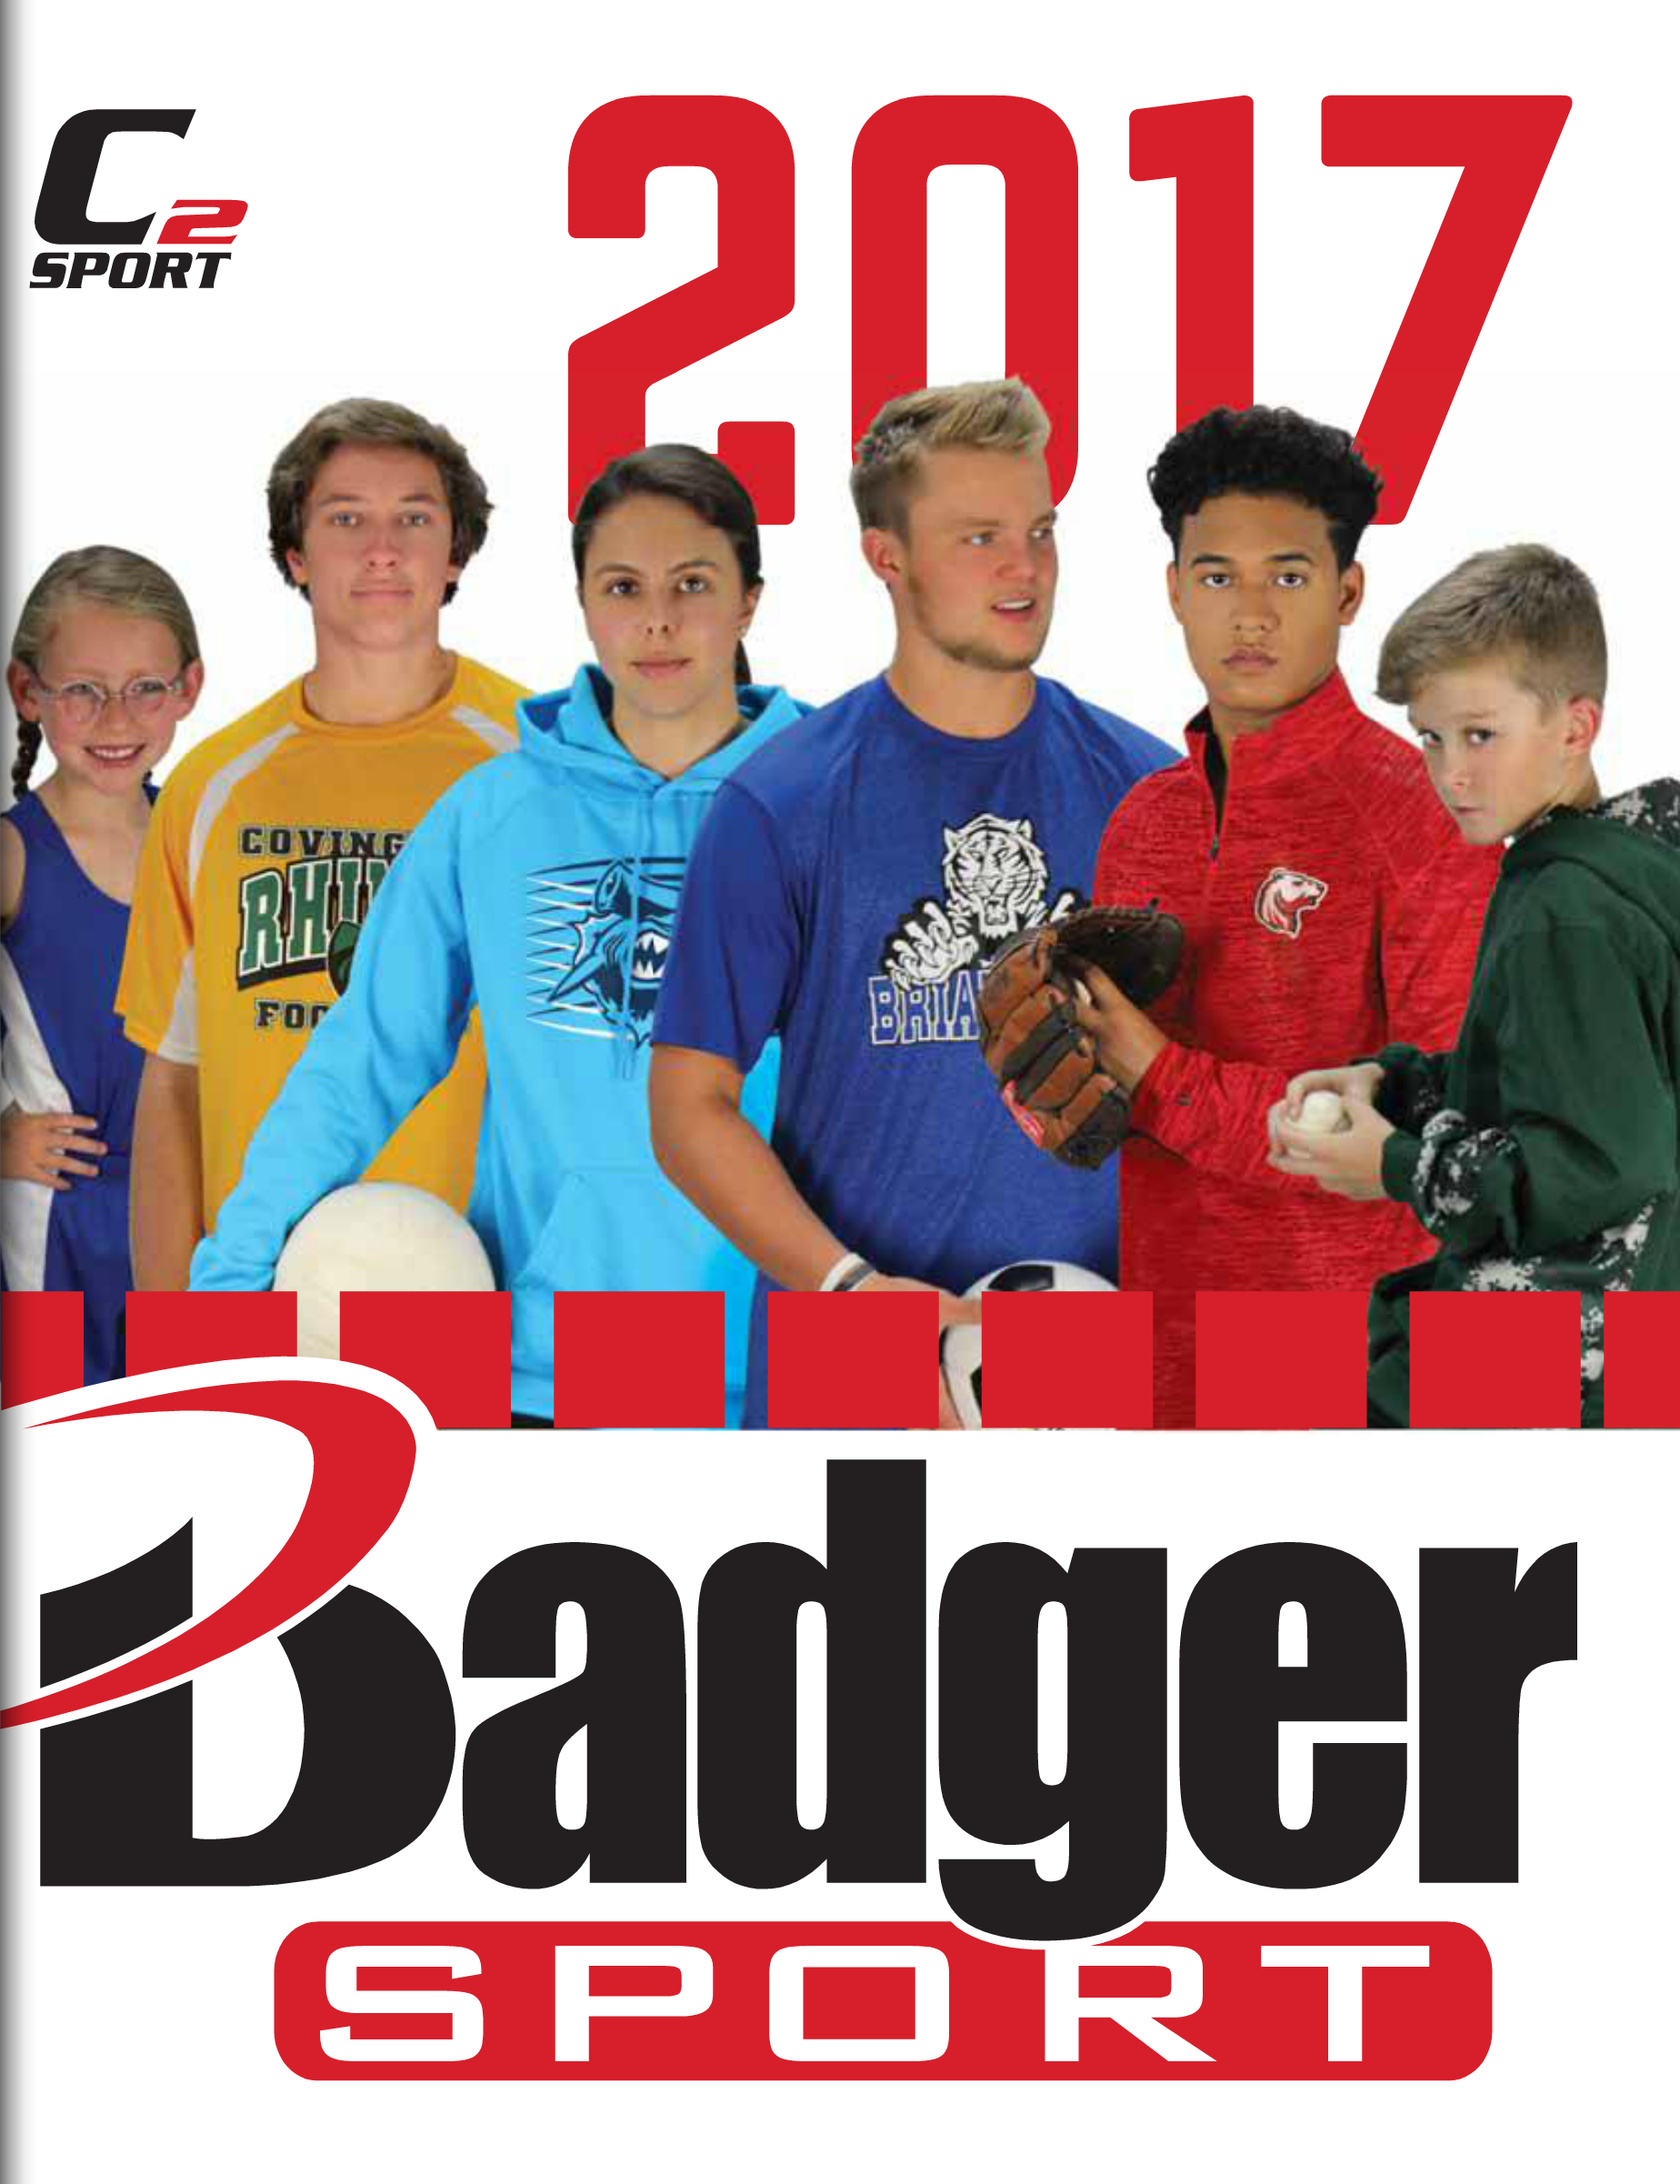 Badger Sports Catalog 2017